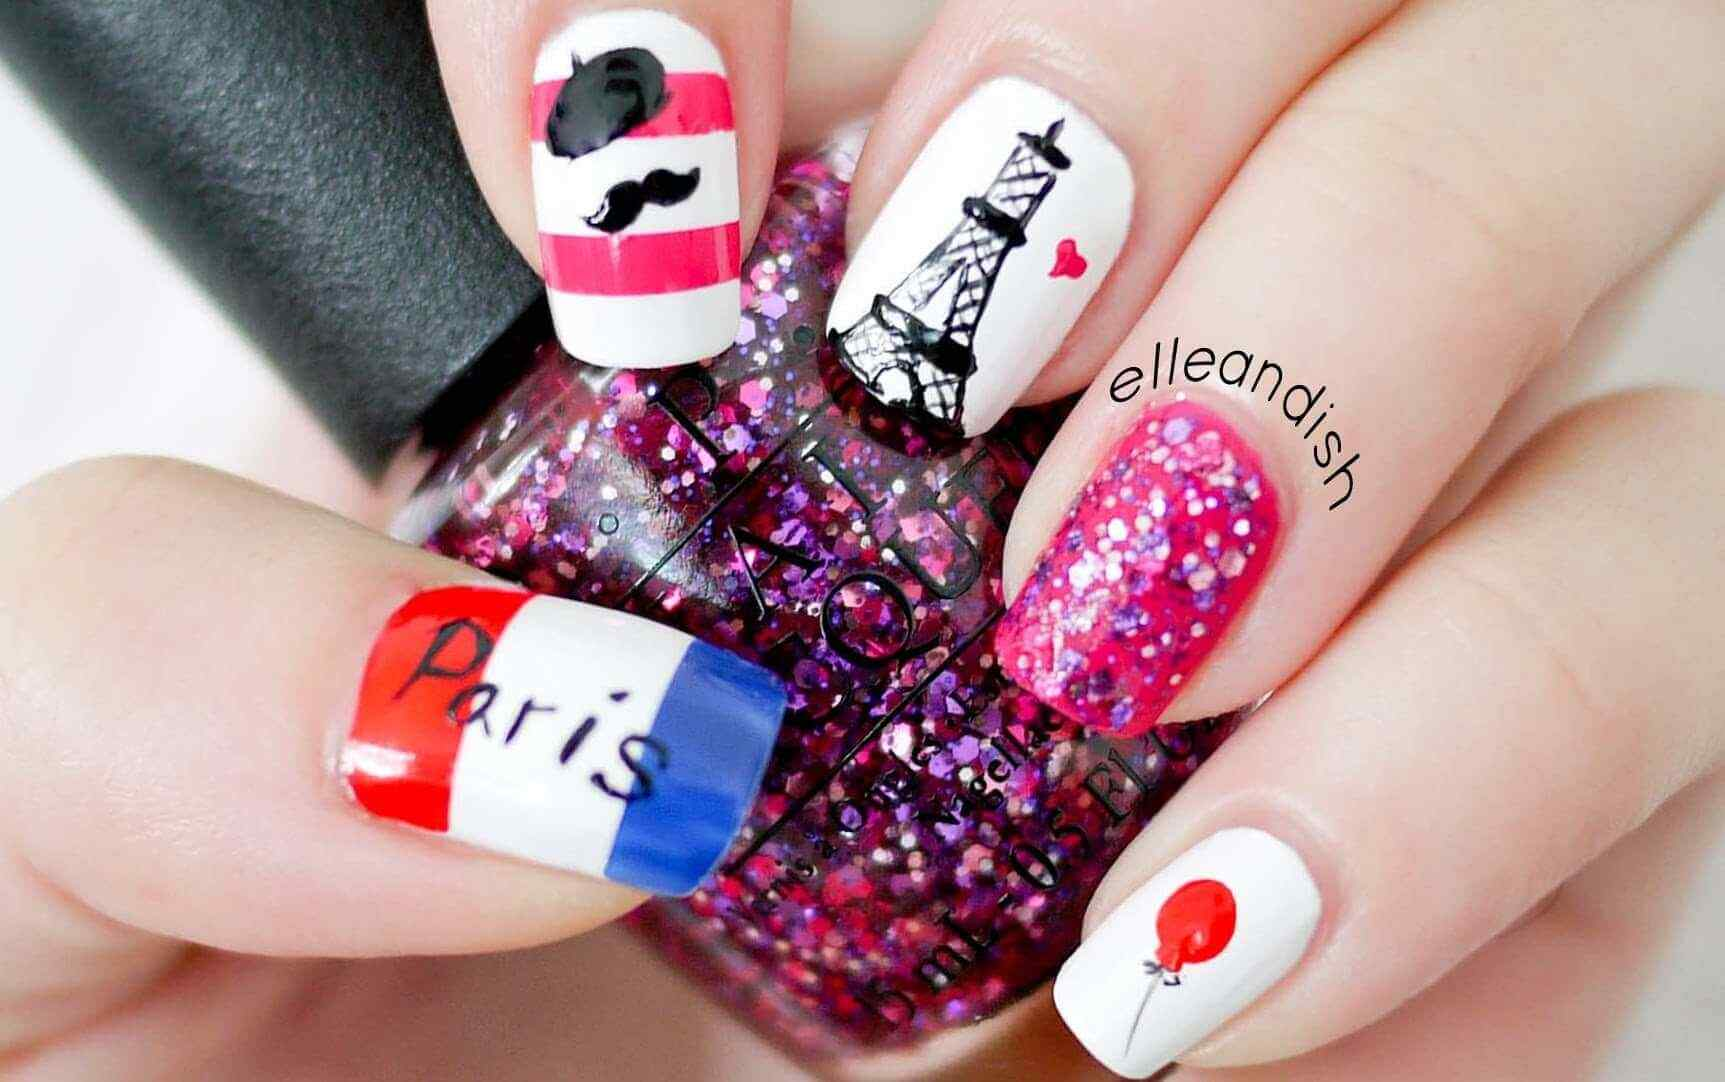 Uñas decoradas estilo paris!